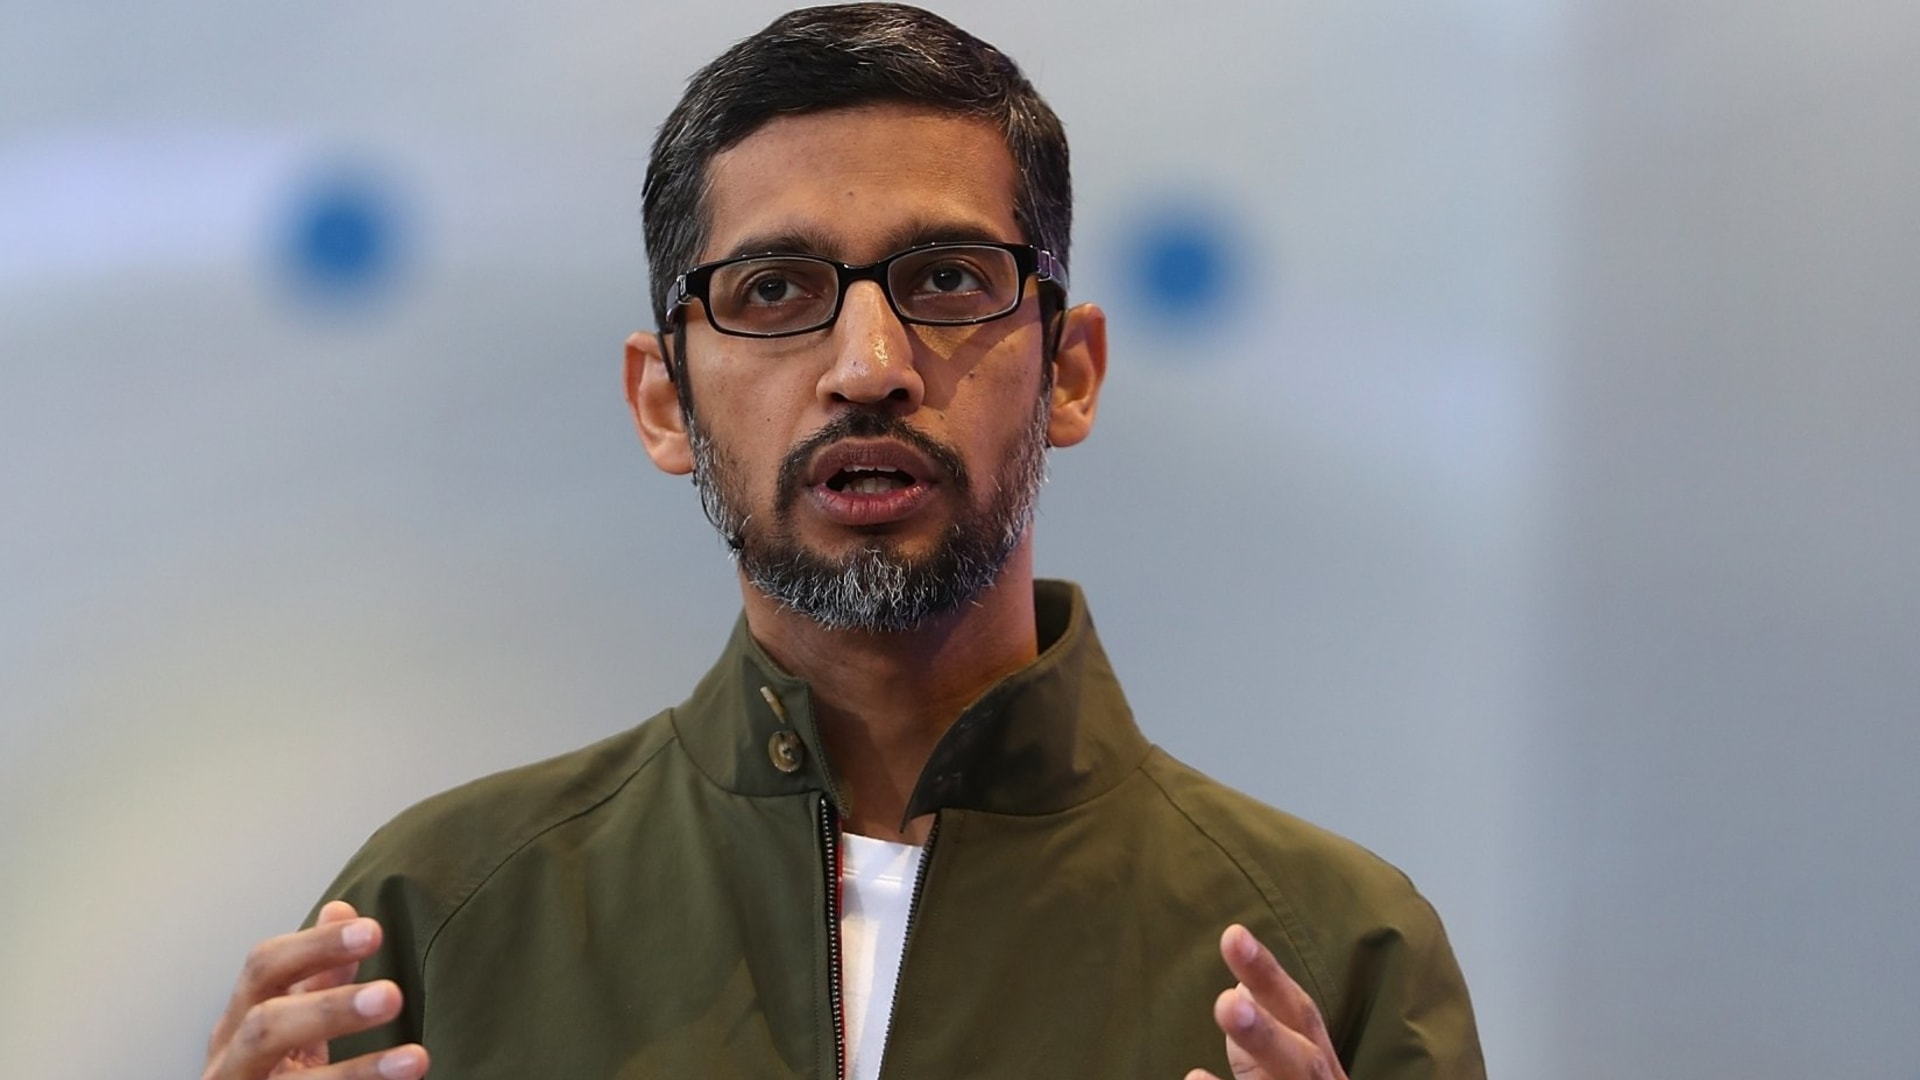 Google Responds to Pressure From Apple Over Privacy